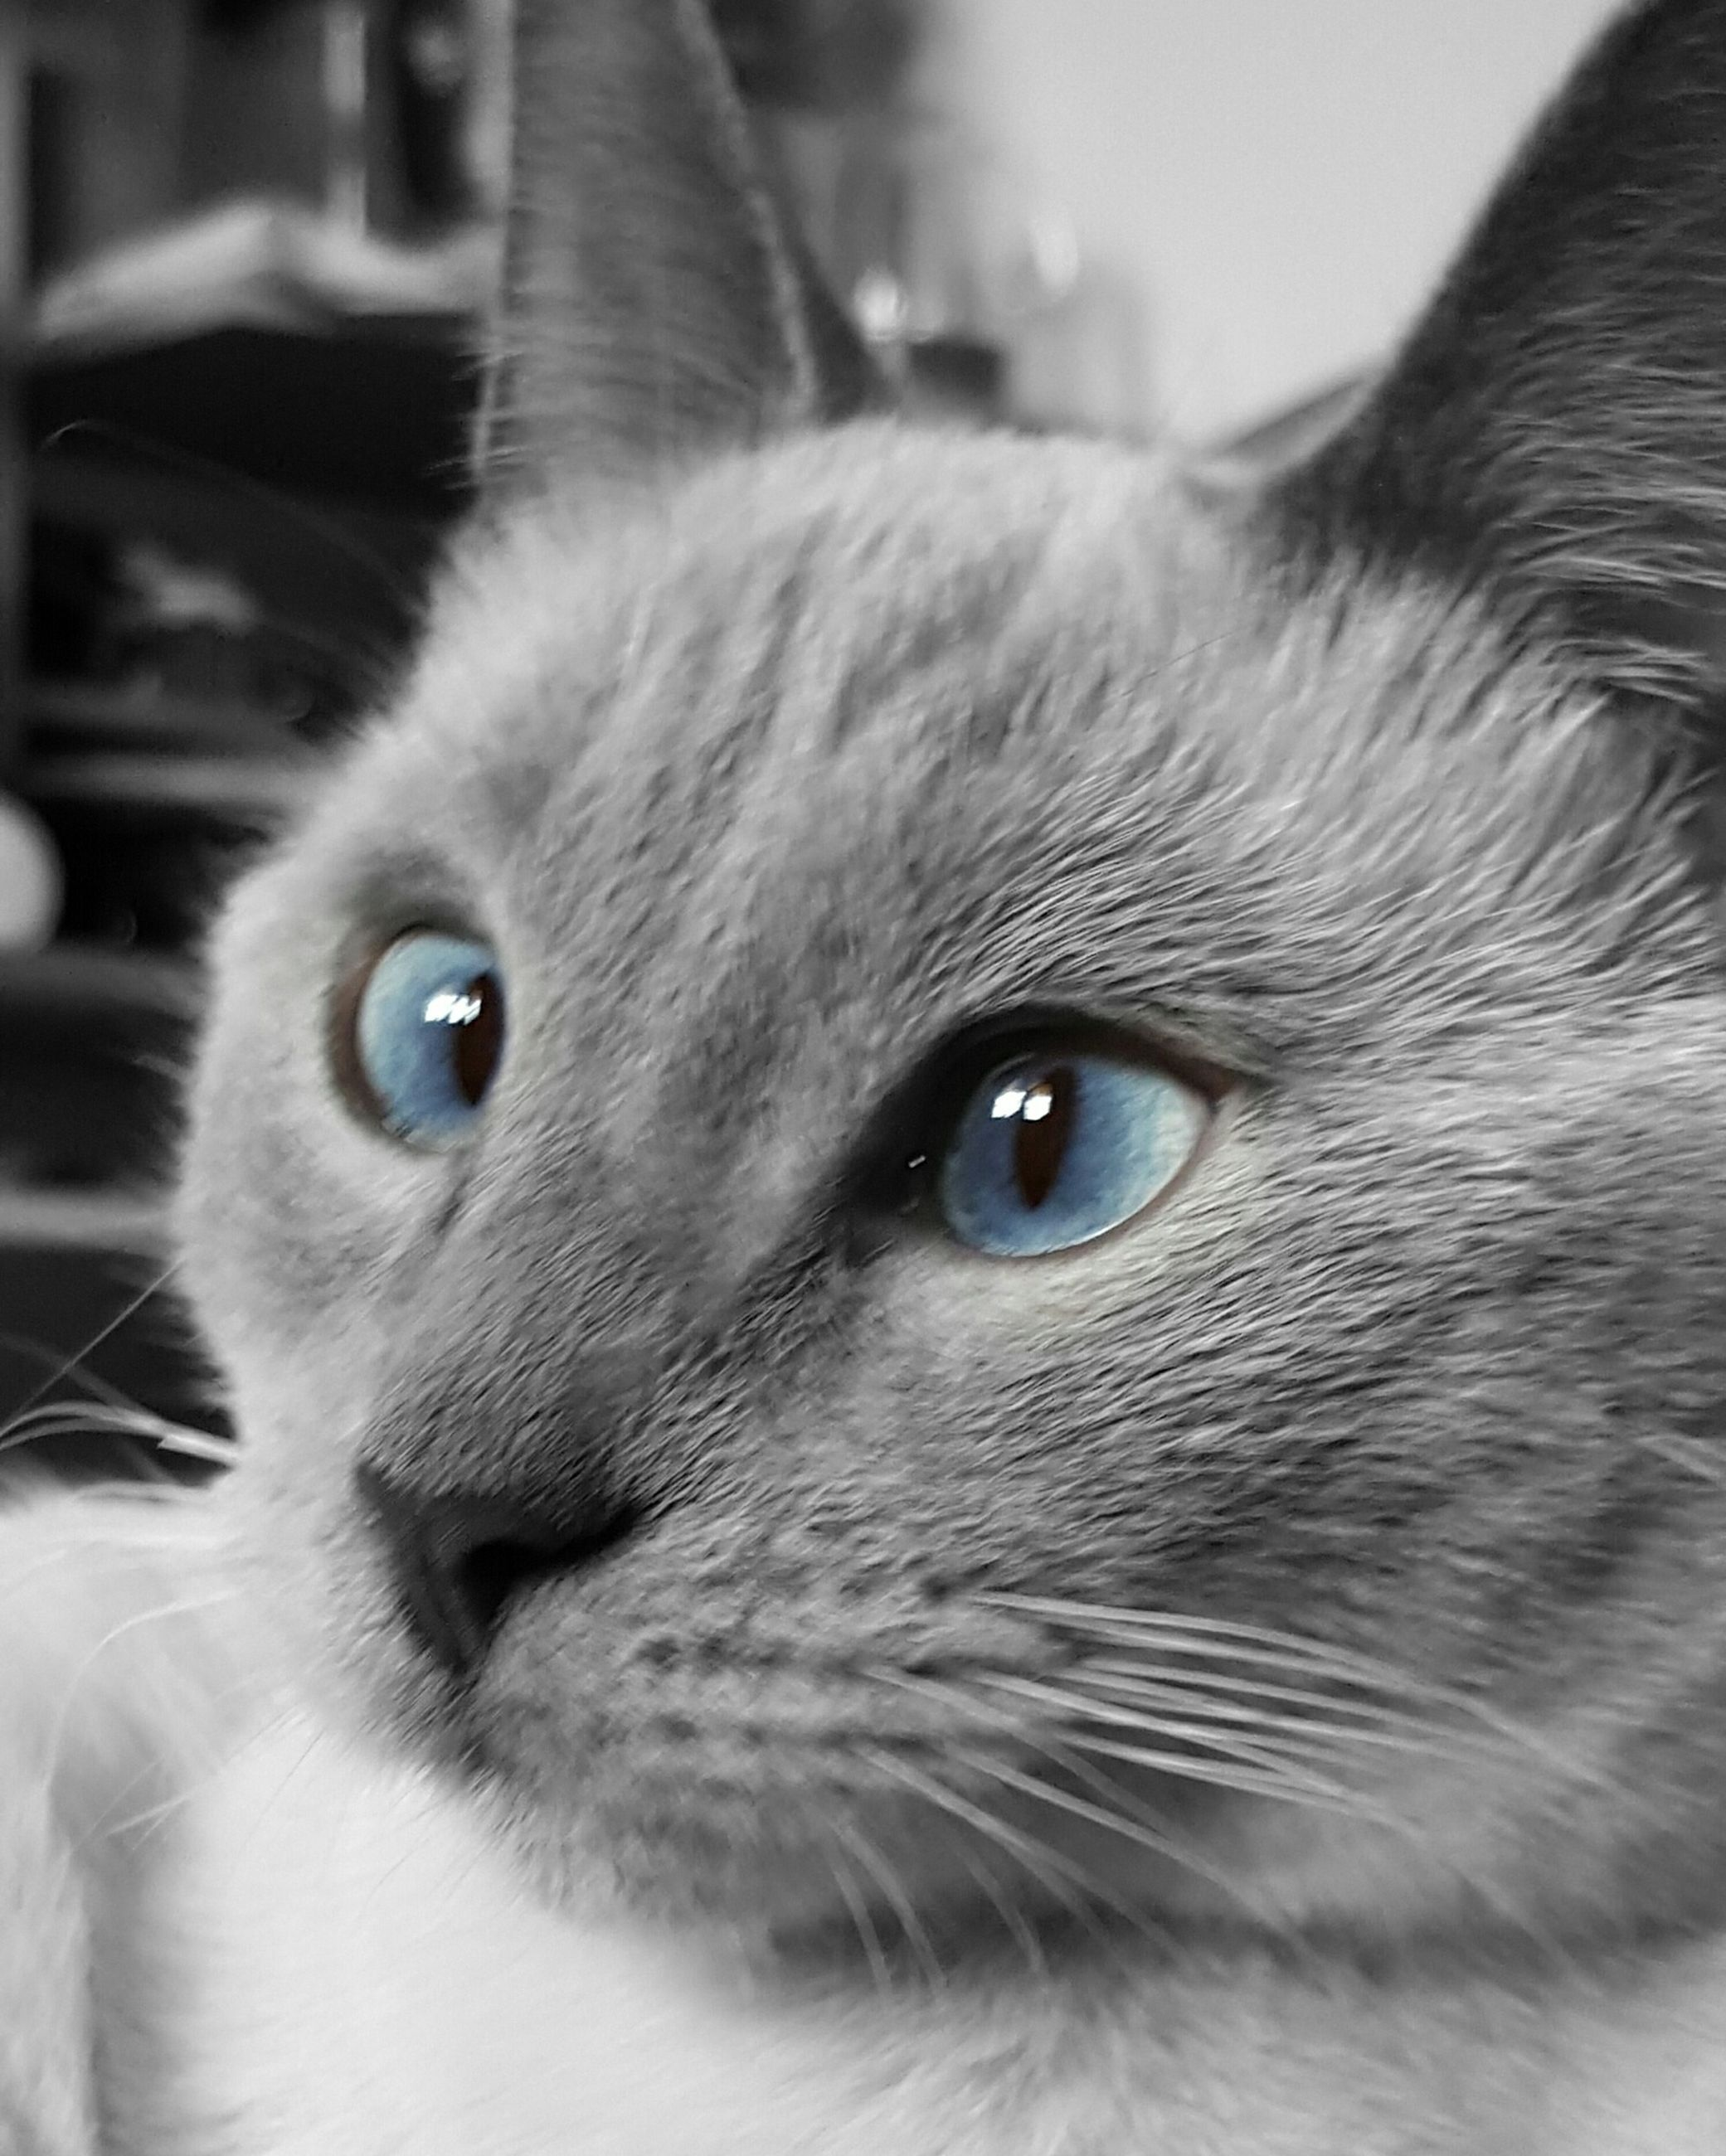 domestic cat, pets, domestic animals, feline, one animal, animal themes, cat, whisker, looking at camera, portrait, mammal, close-up, animal head, indoors, blue eyes, domestic, no people, kitten, siamese cat, persian cat, day